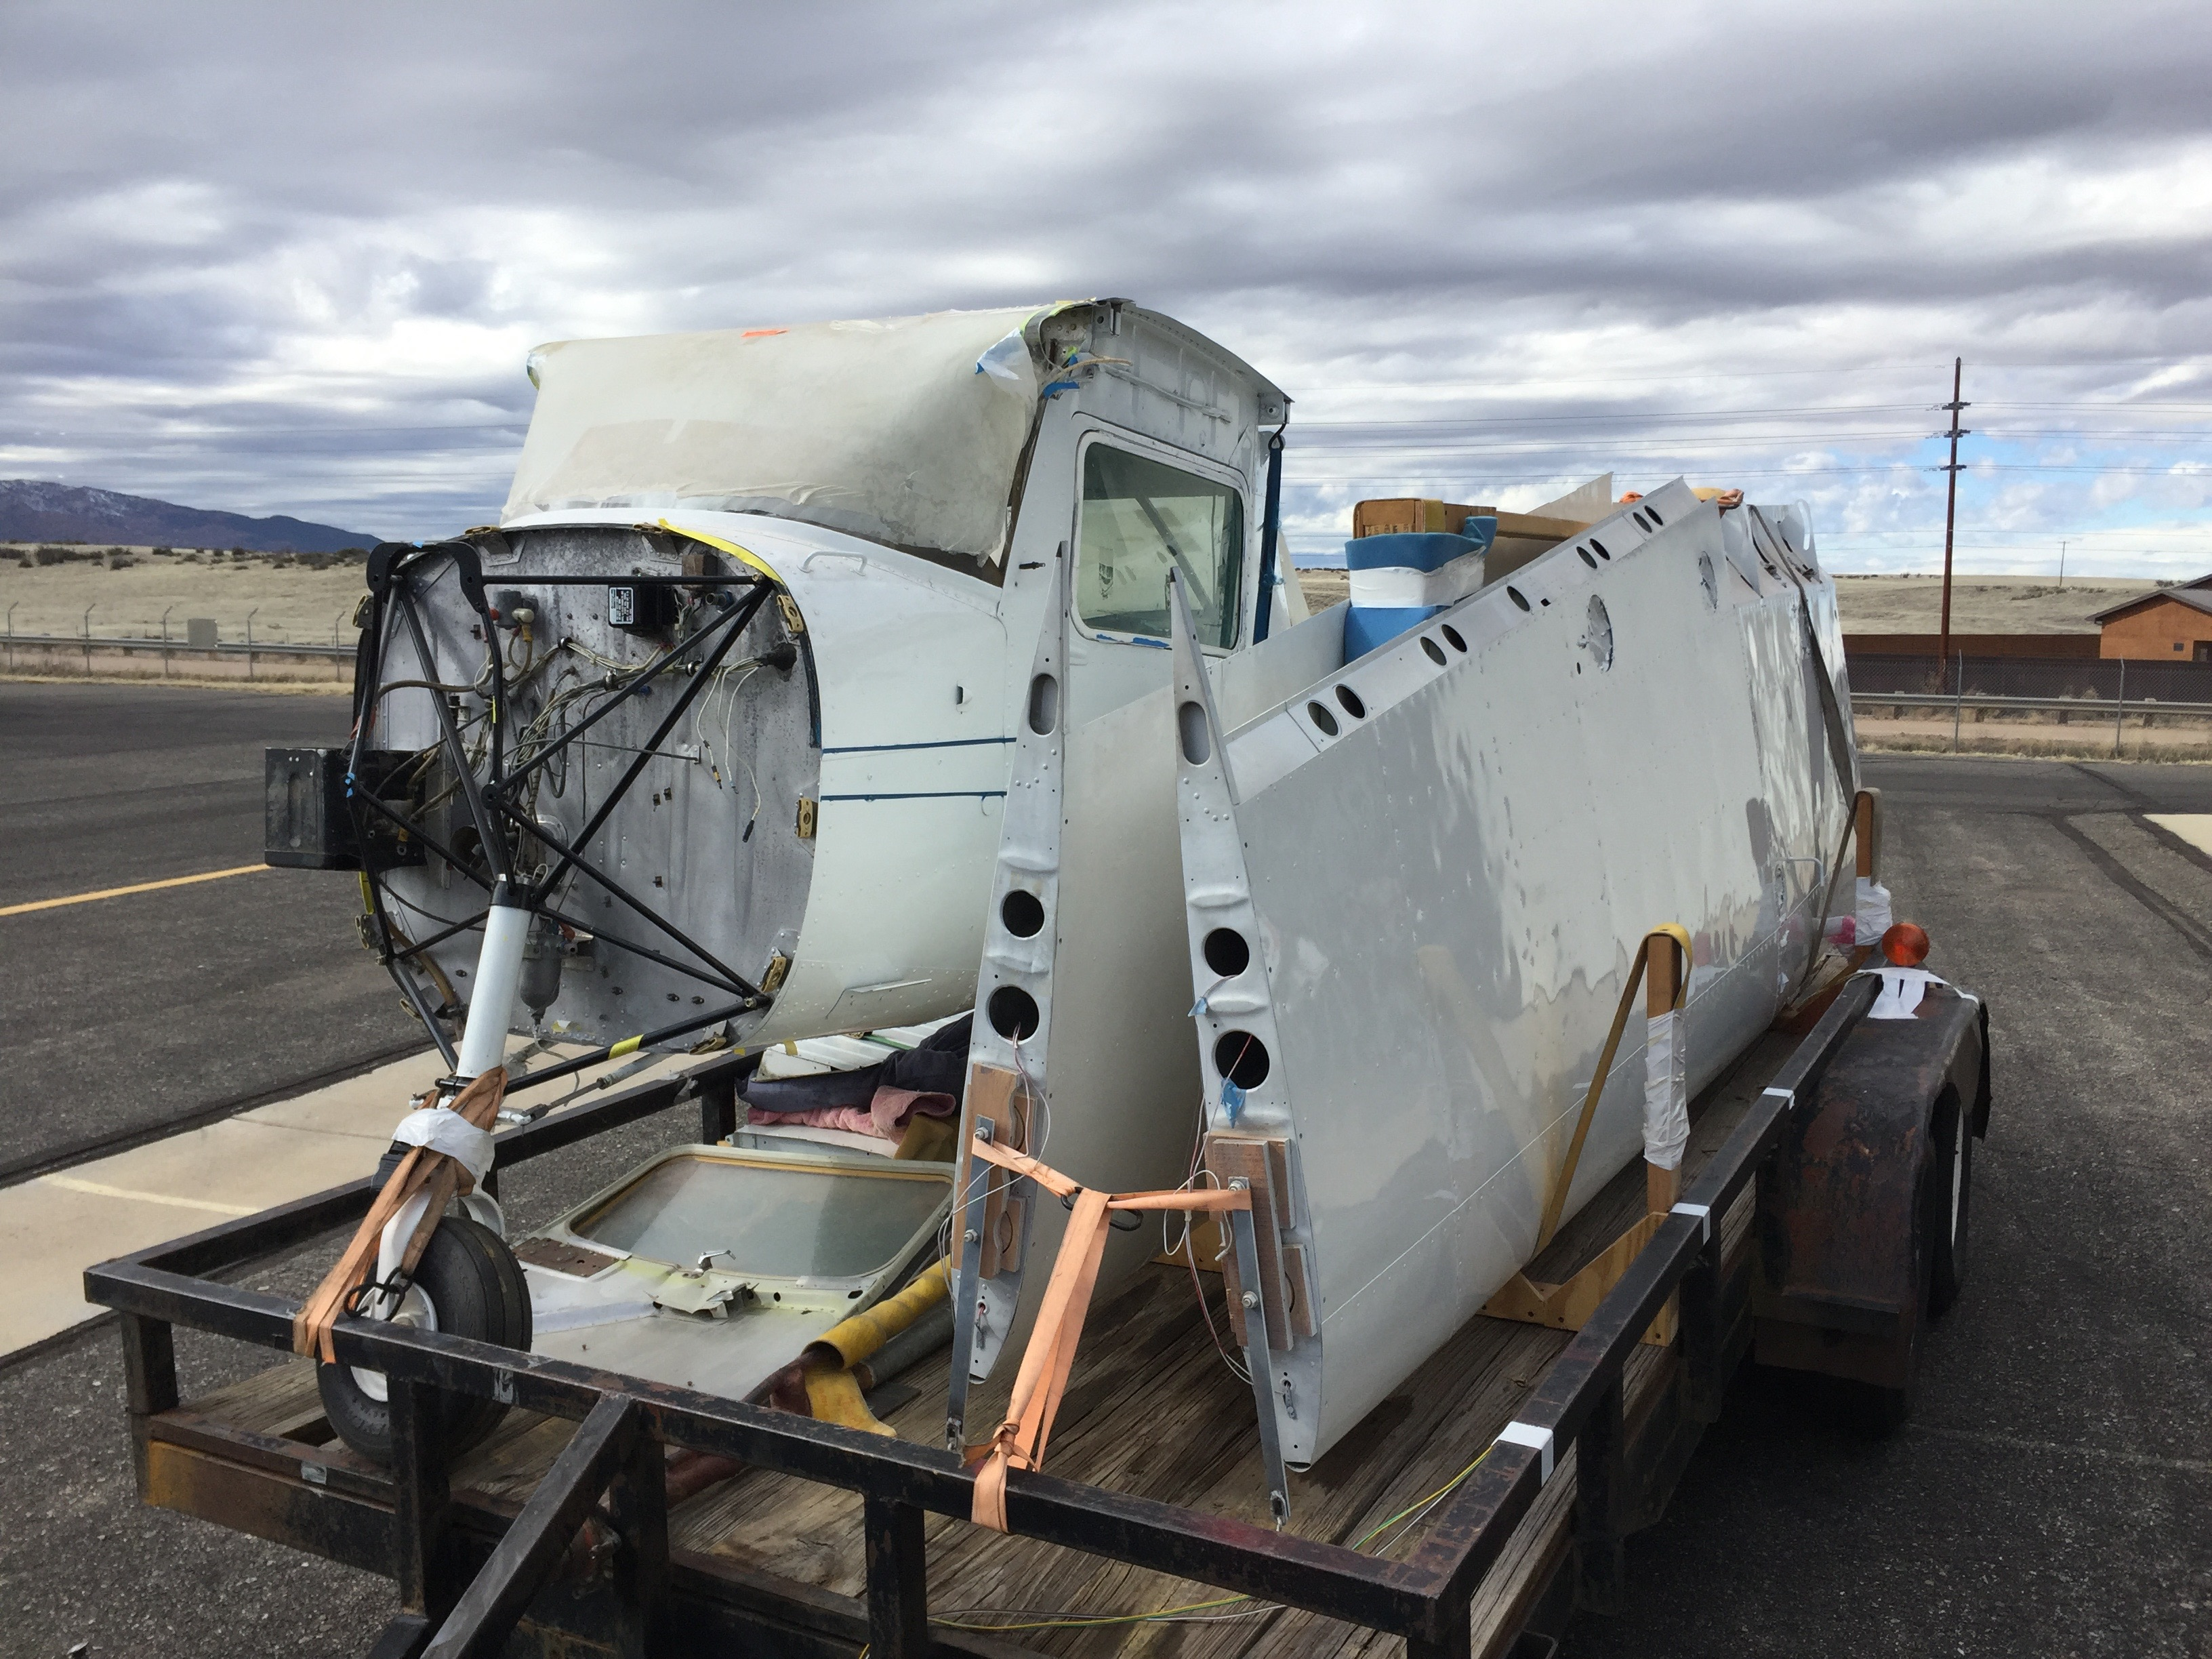 1975 150M Project - $6500 | Buy & Sell - Airplanes Only | Cessna 150